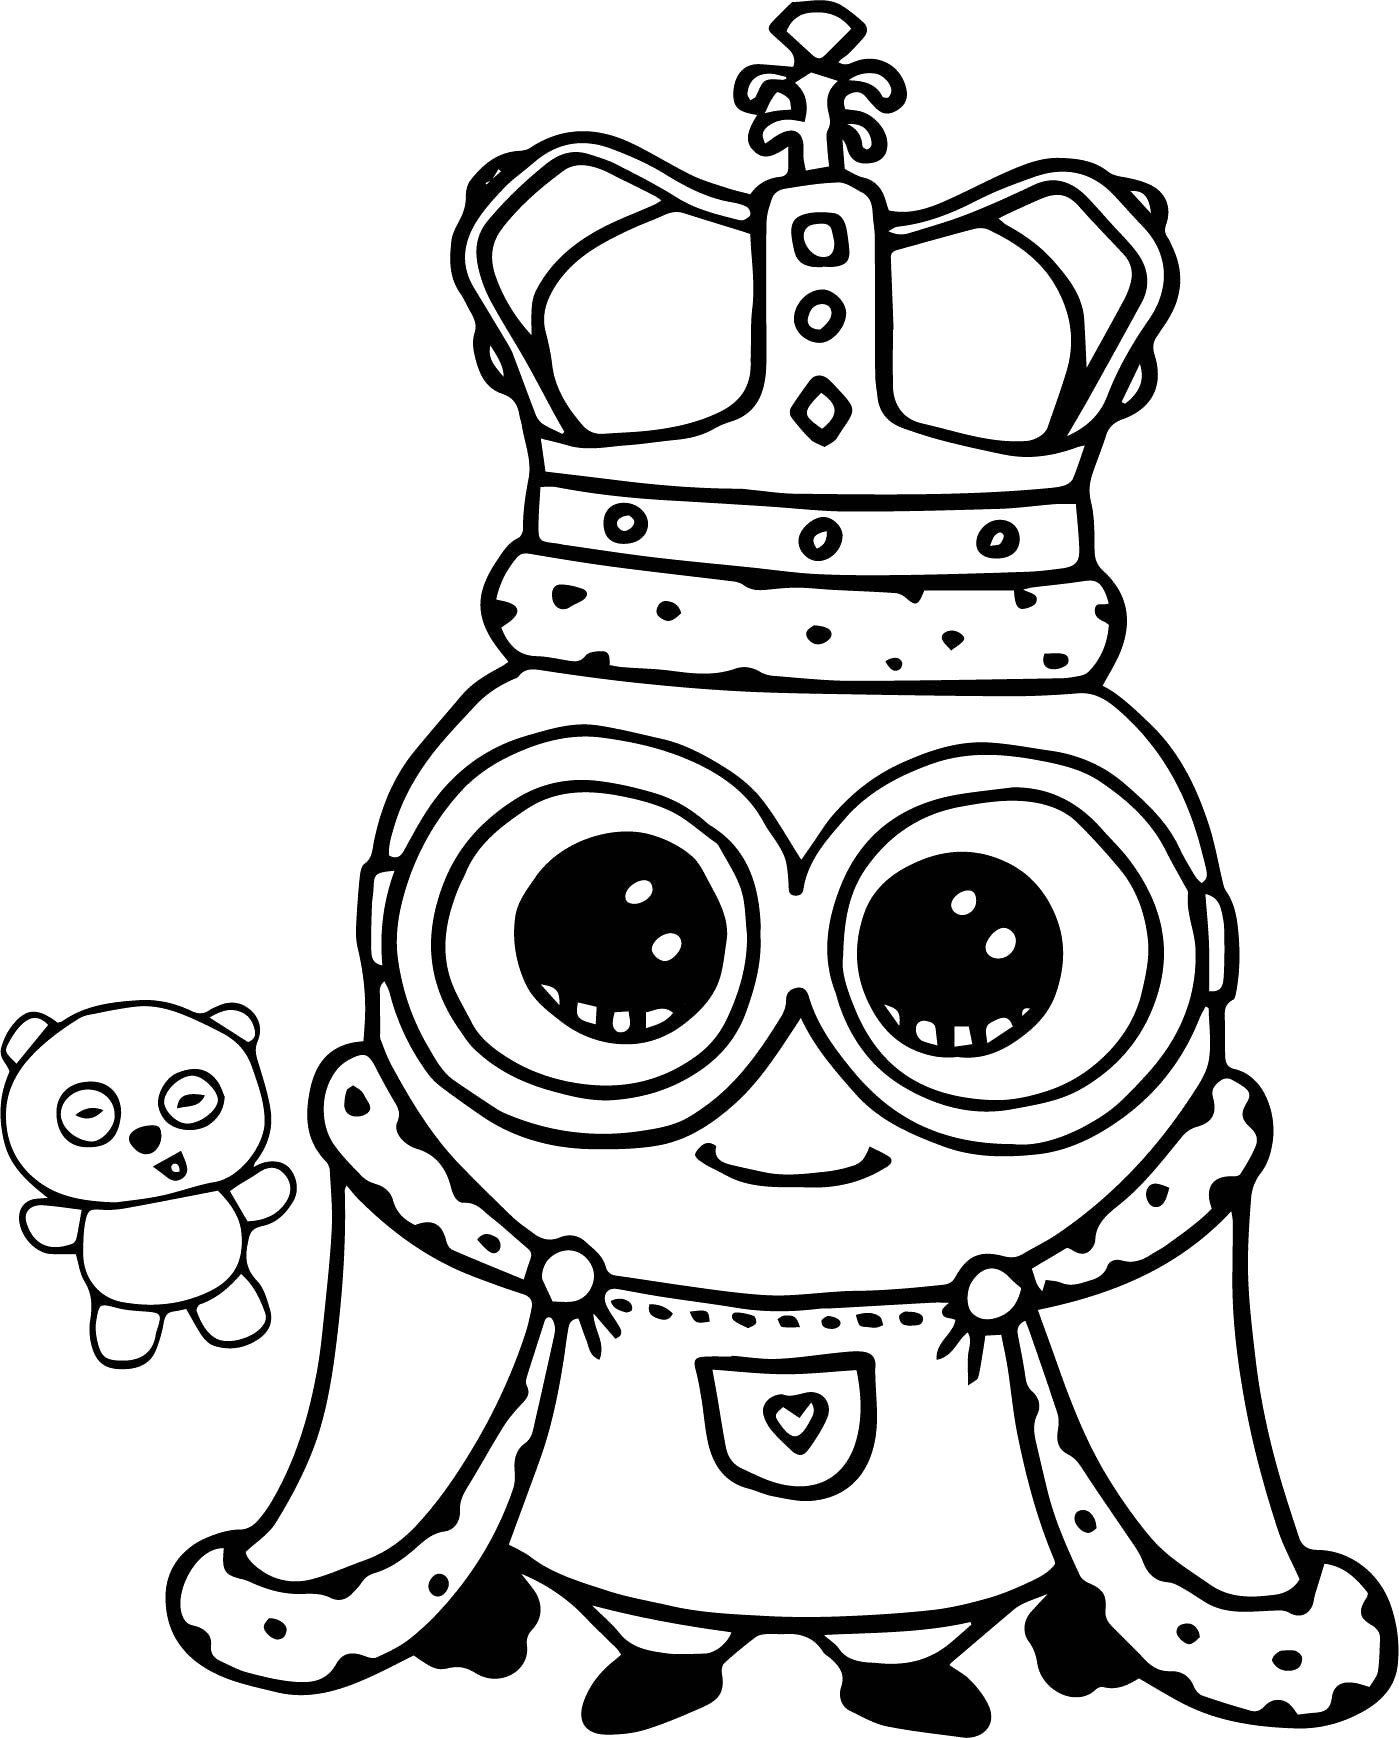 Despicable Me Coloring Pages Unique Beautiful Minion Bob Coloring Pages Chemicalimbalance Minion Coloring Pages Cute Coloring Pages Minions Coloring Pages